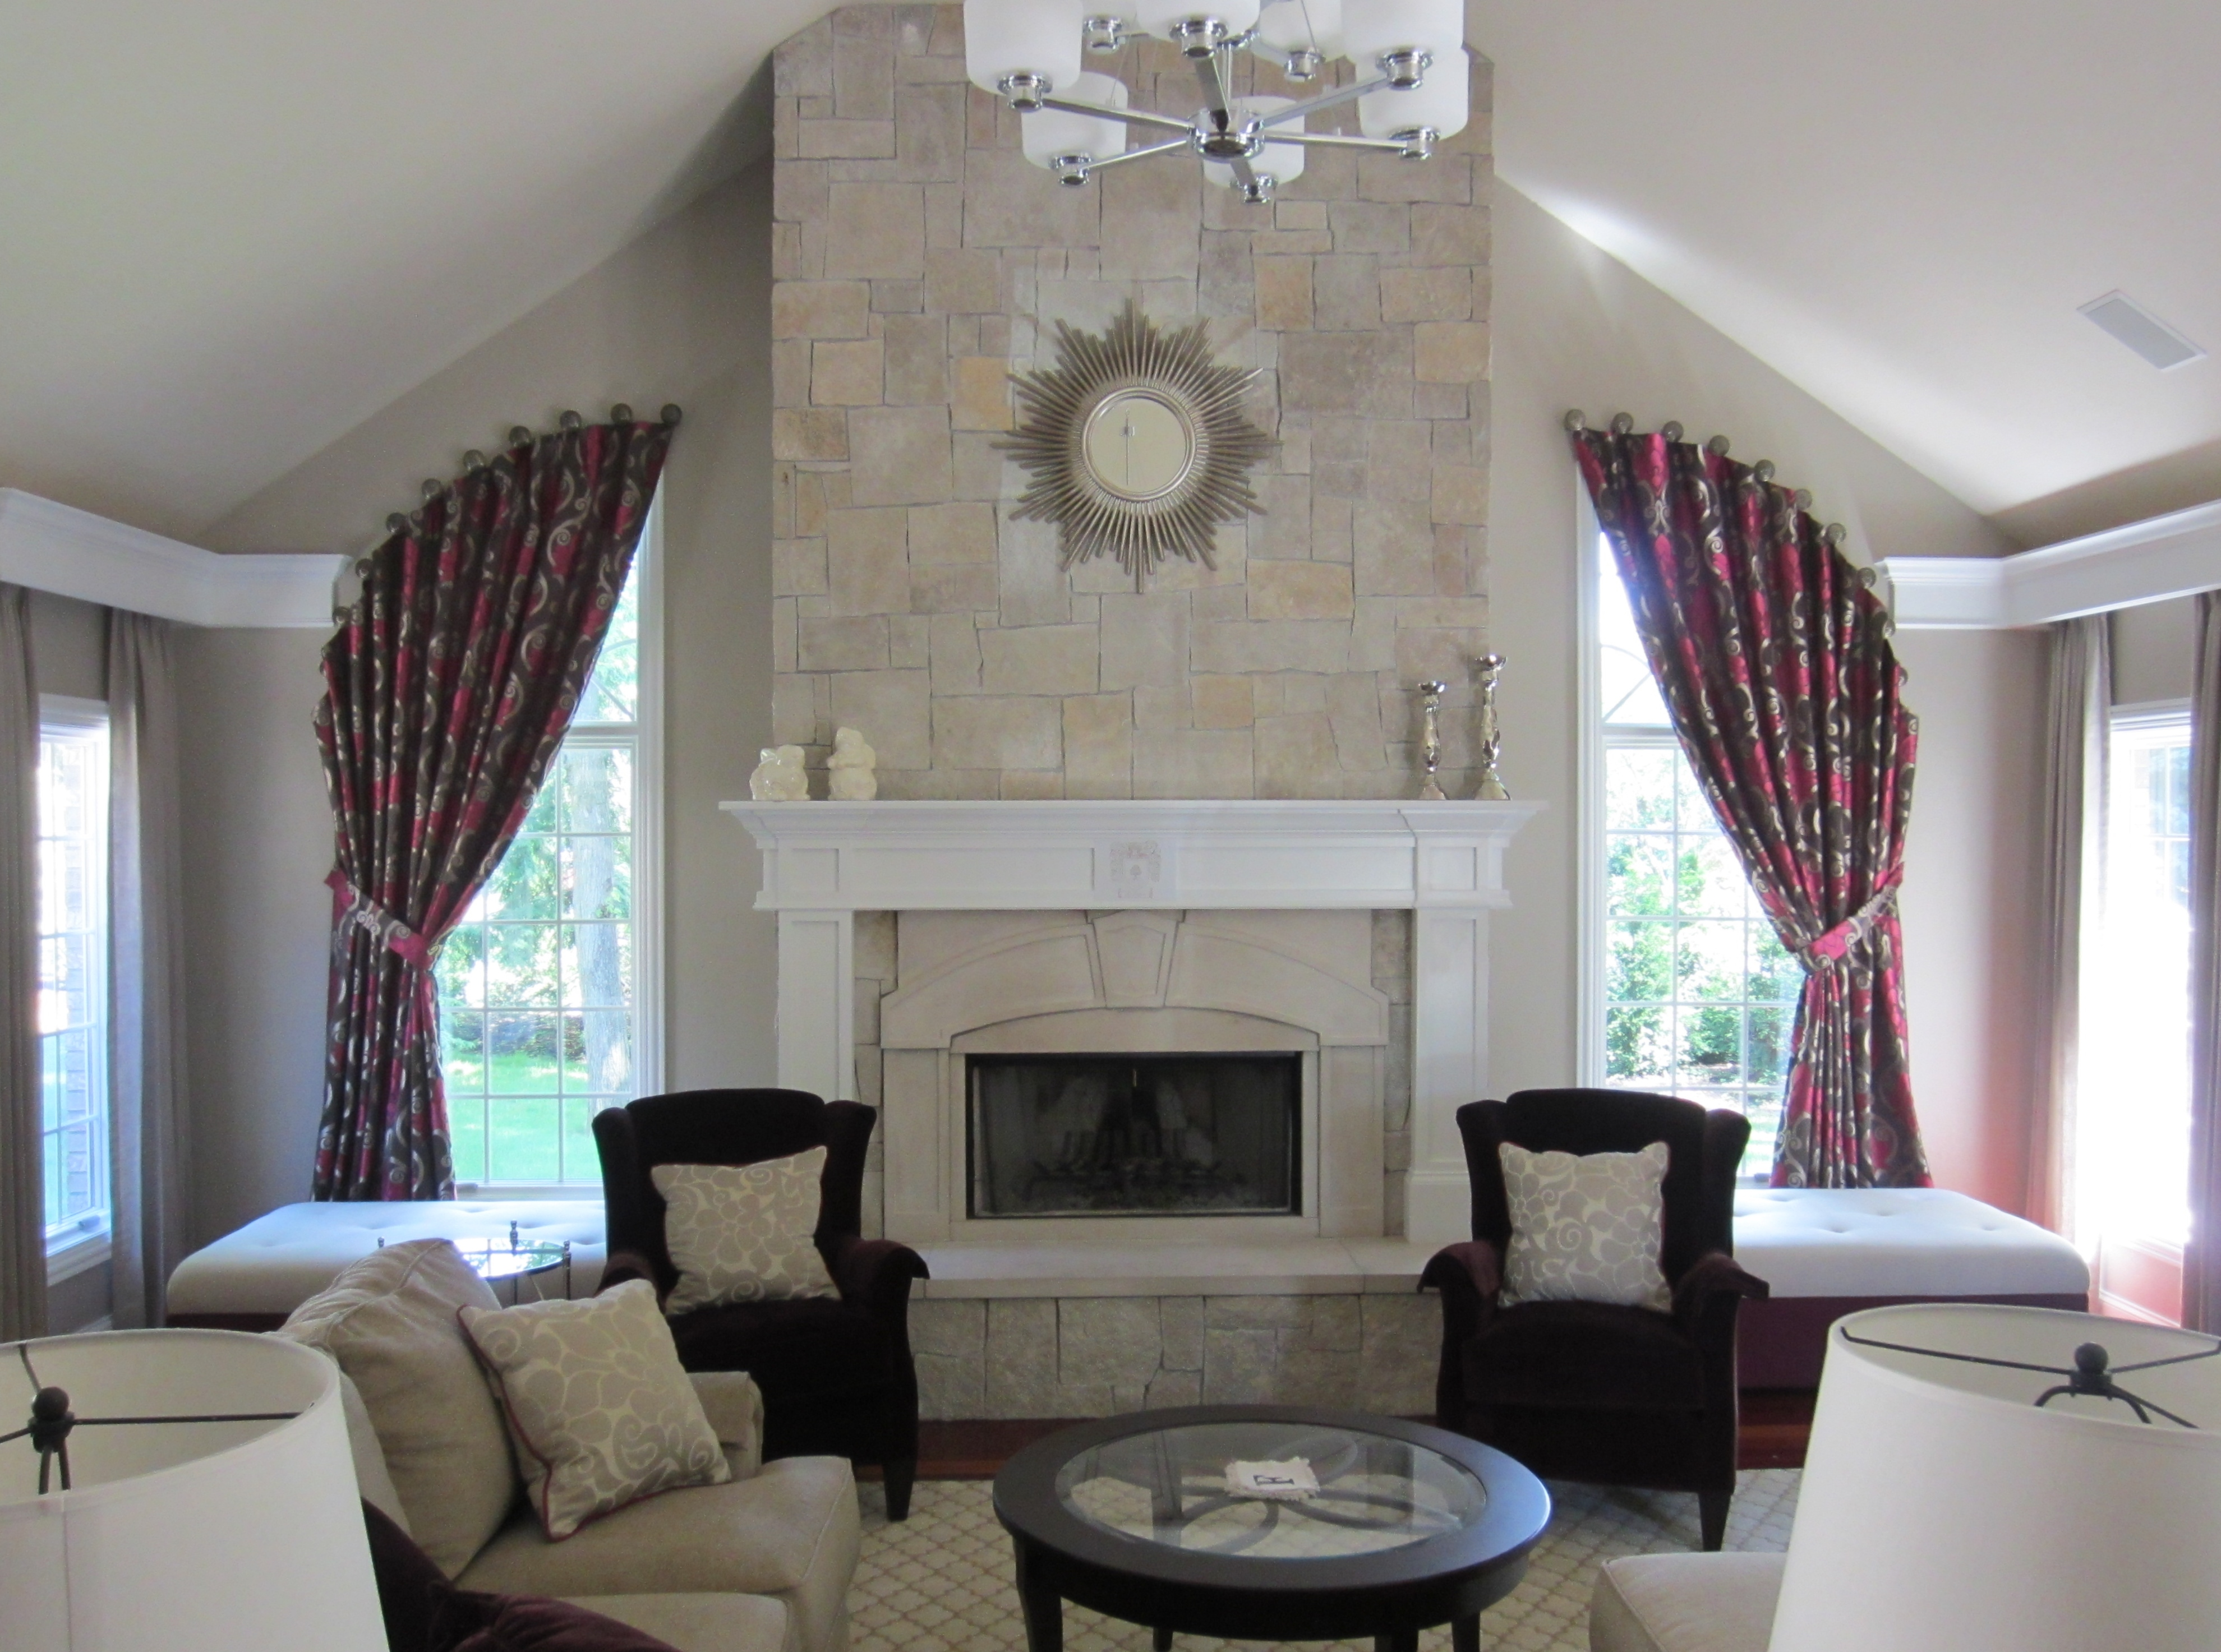 Design Tips: Coordinating Fabric In Living Spaces | Stylish Living With RCI